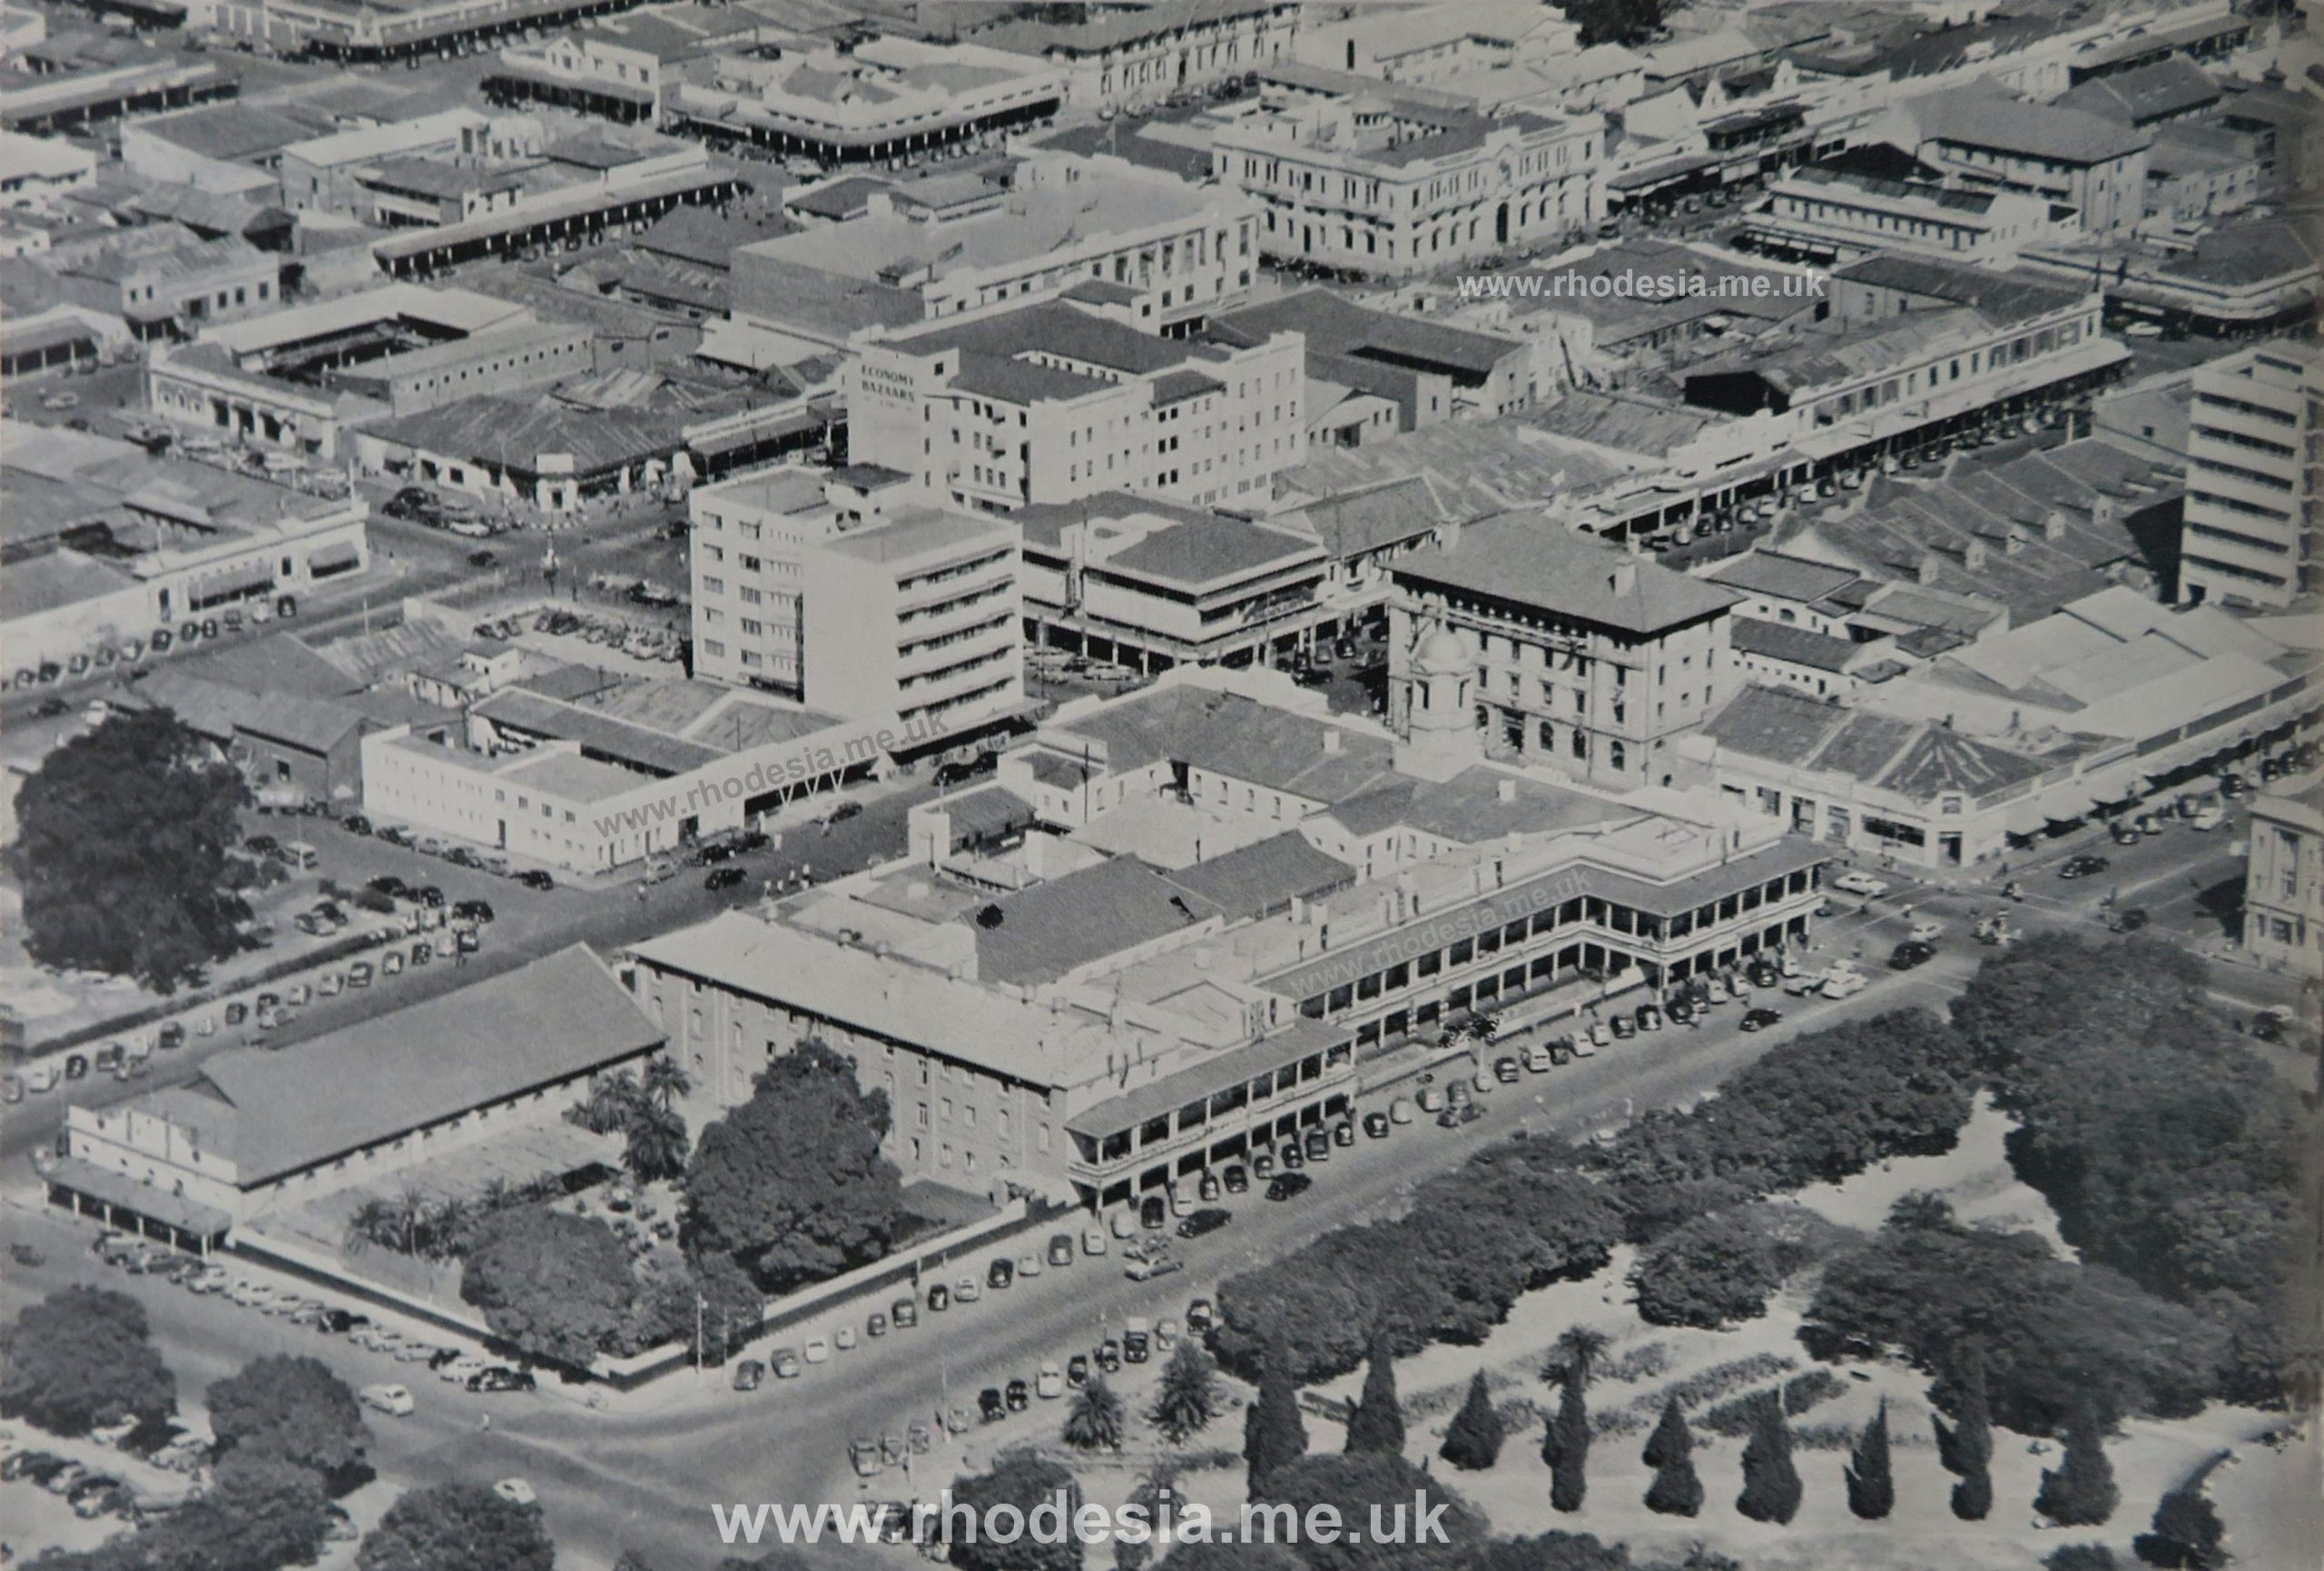 Meikles Hotel, Salisbury, Rhodesia view from the air early 1950s